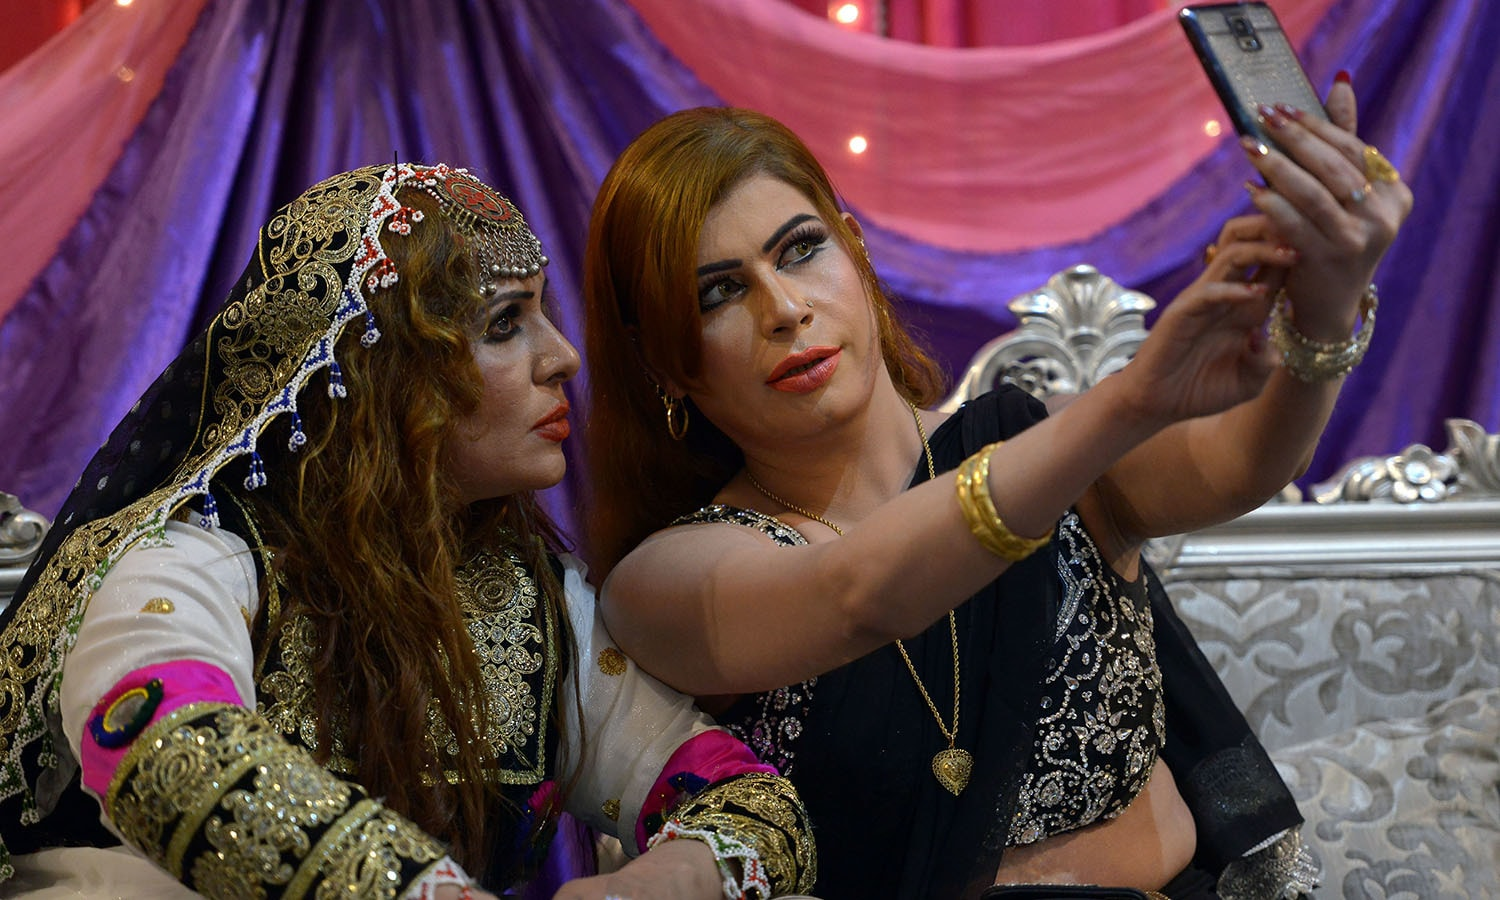 Pakistan's transgender community seeks a reformation